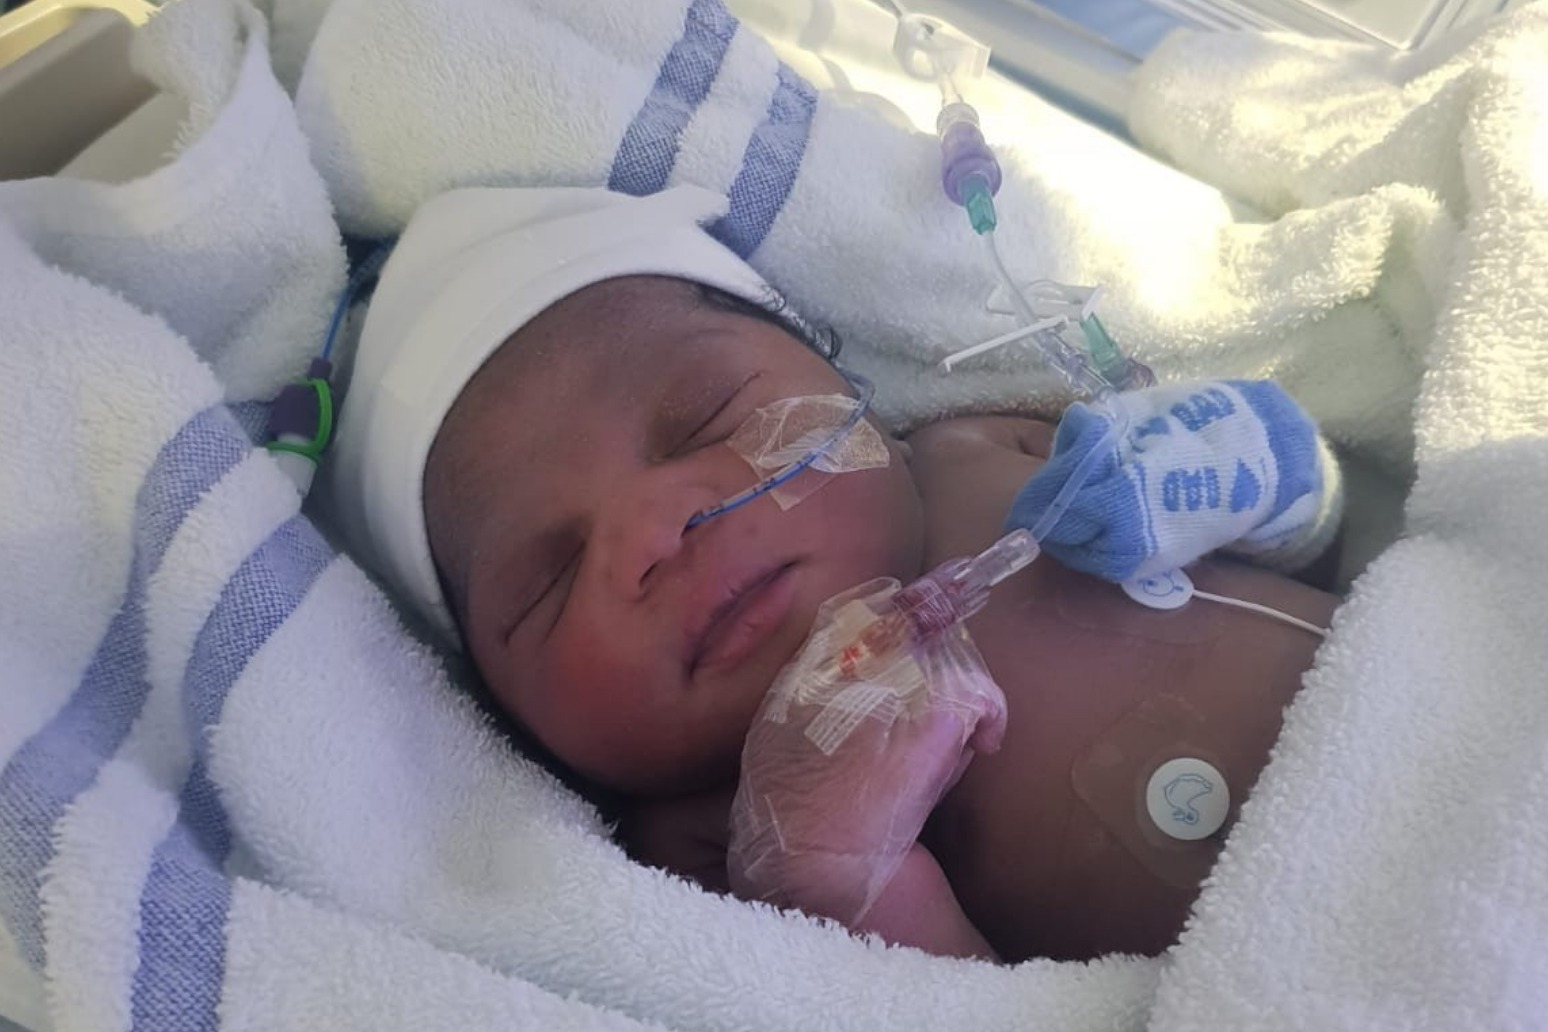 Appeal to trace the mother of a newborn abandoned in London